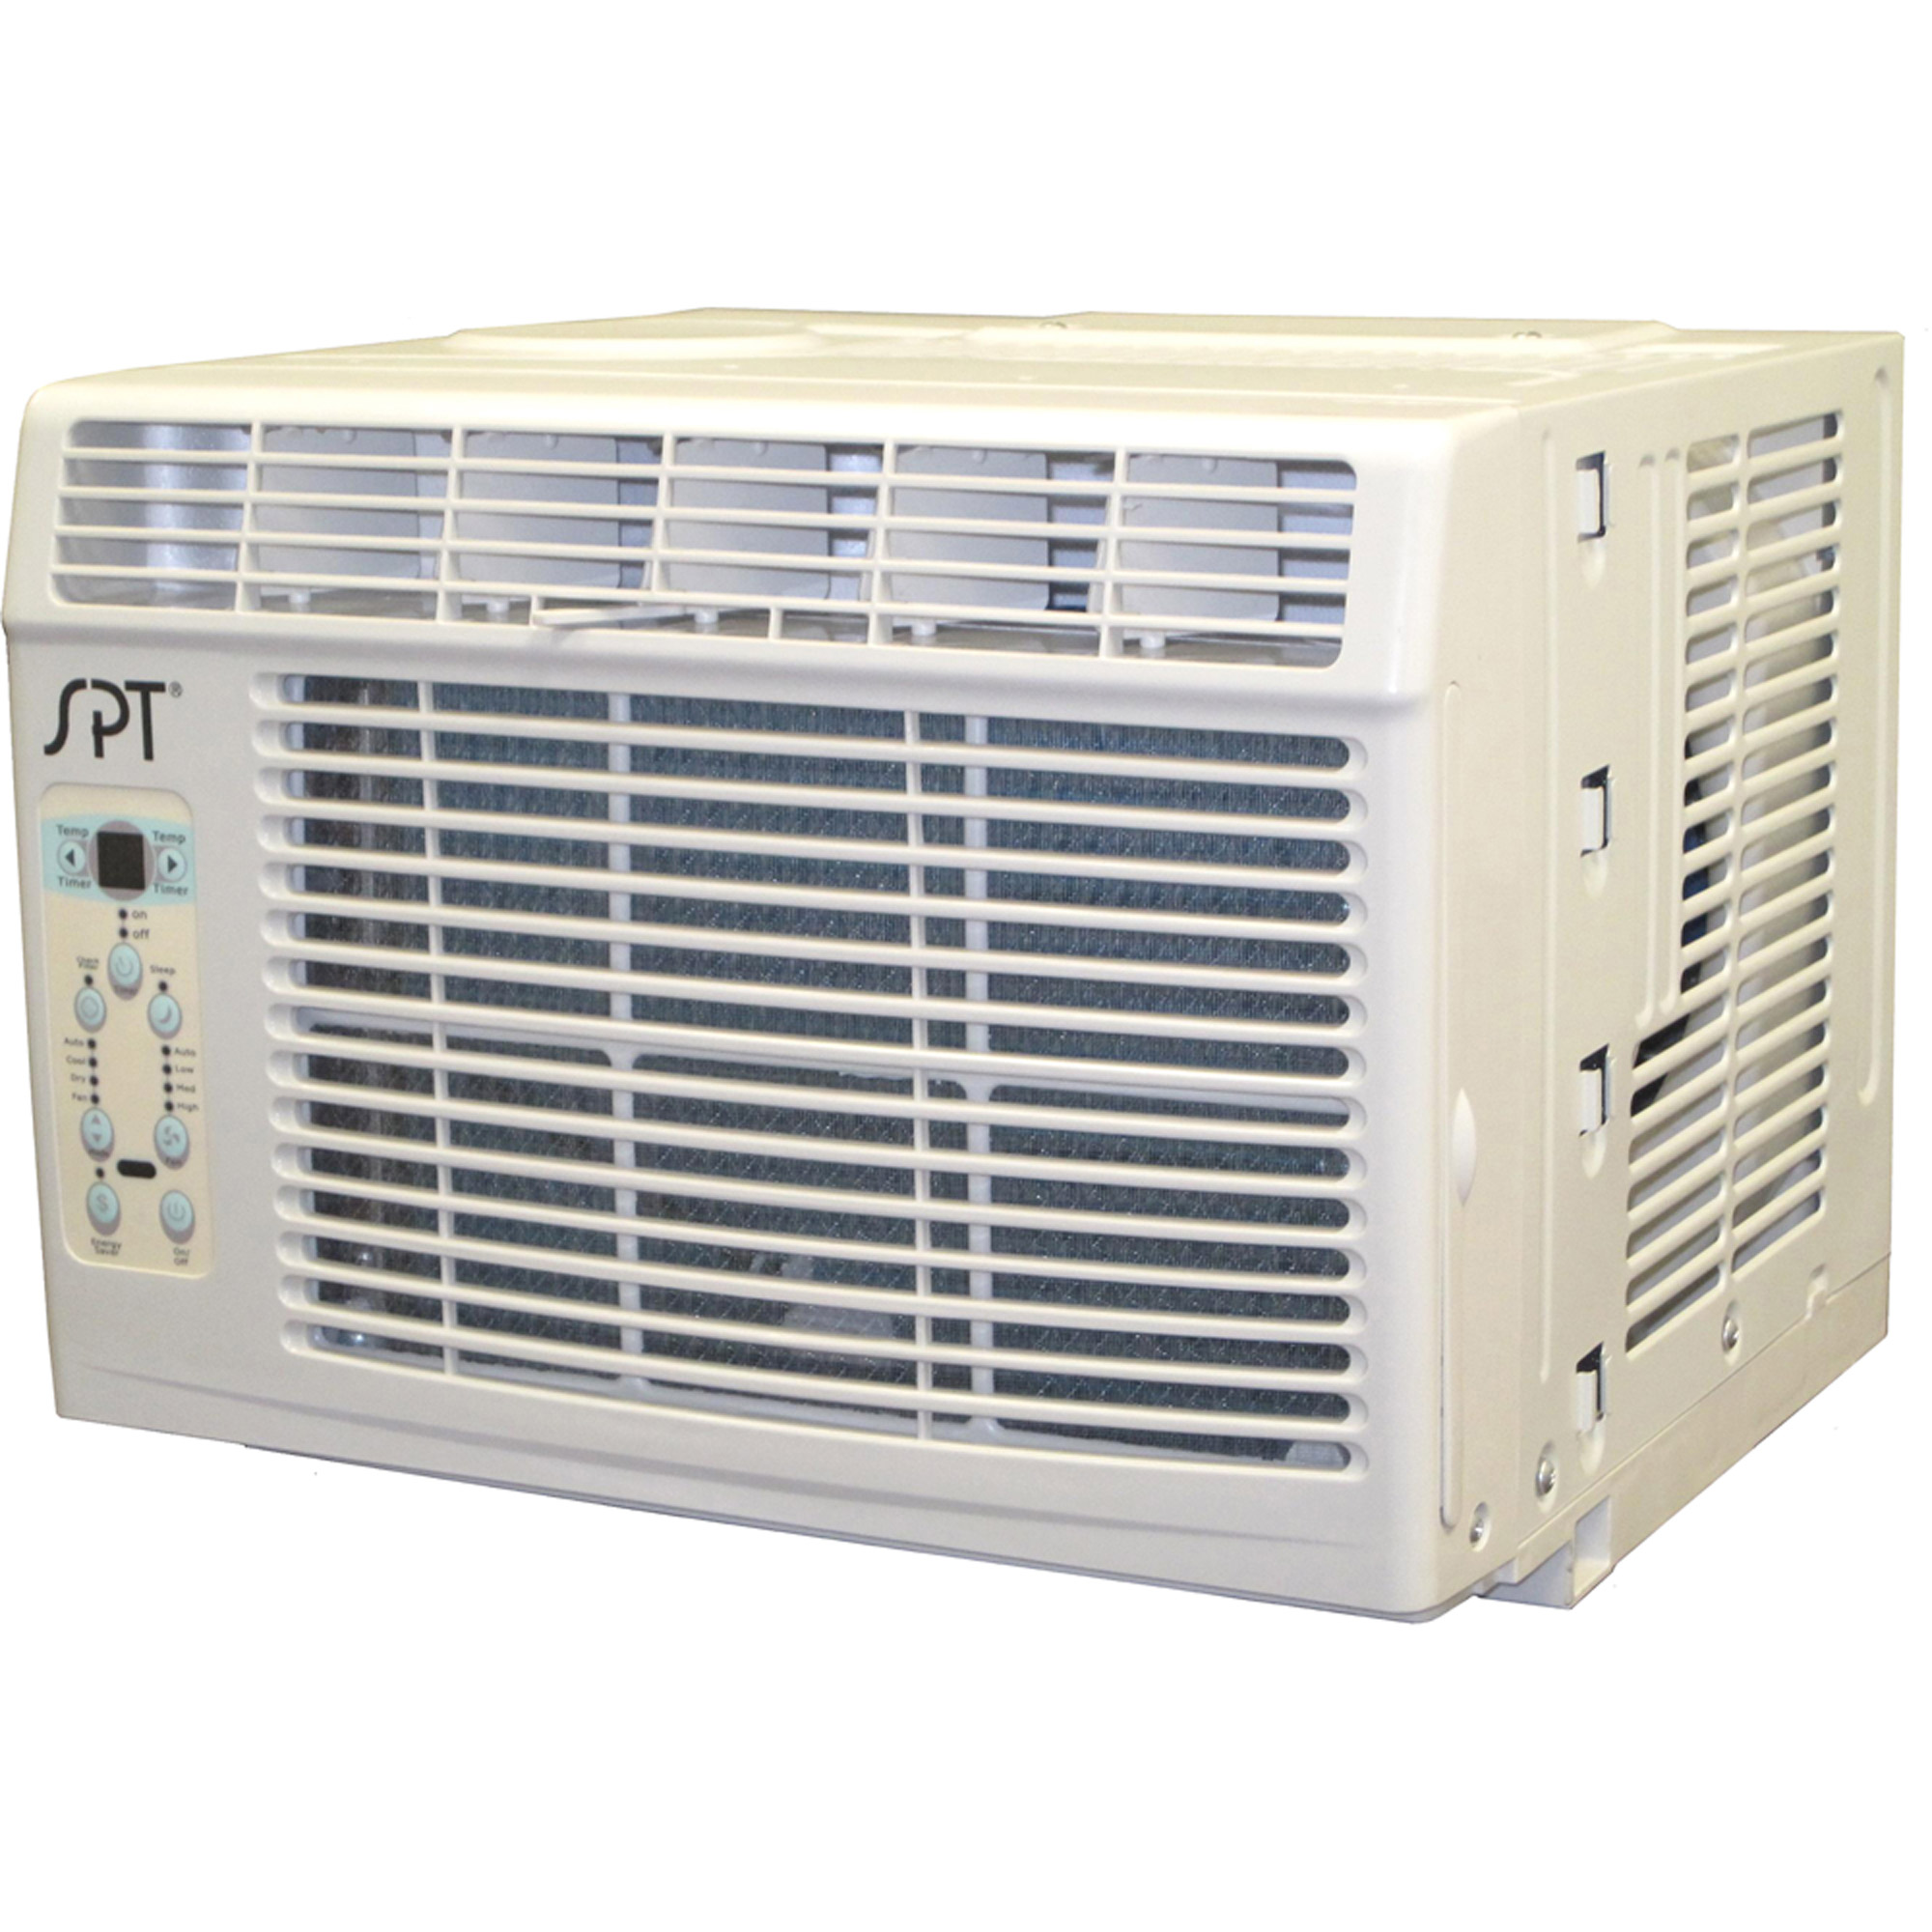 Sunpentown Energy Star 6000 BTU Window Air Conditioner with Remote Control, White